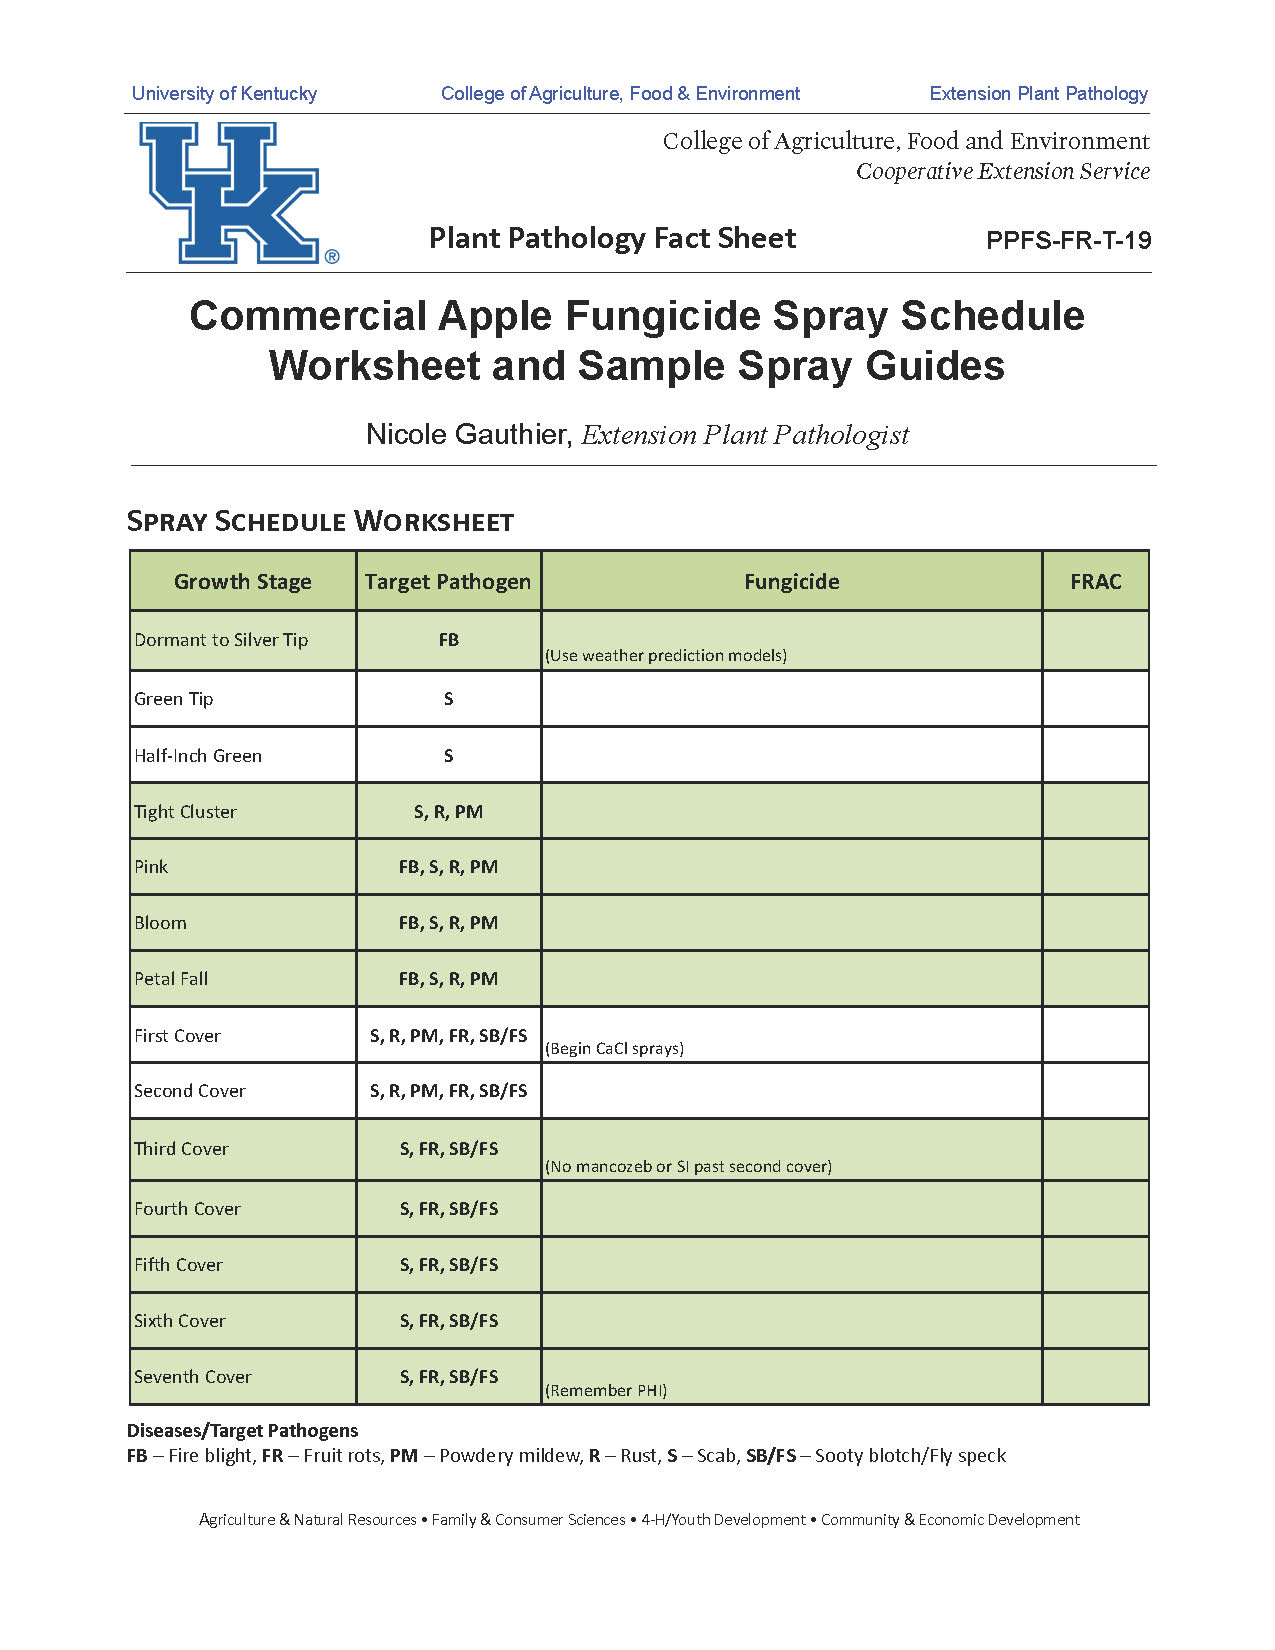 Tree Fruit Fungicide Spray Schedule Worksheets